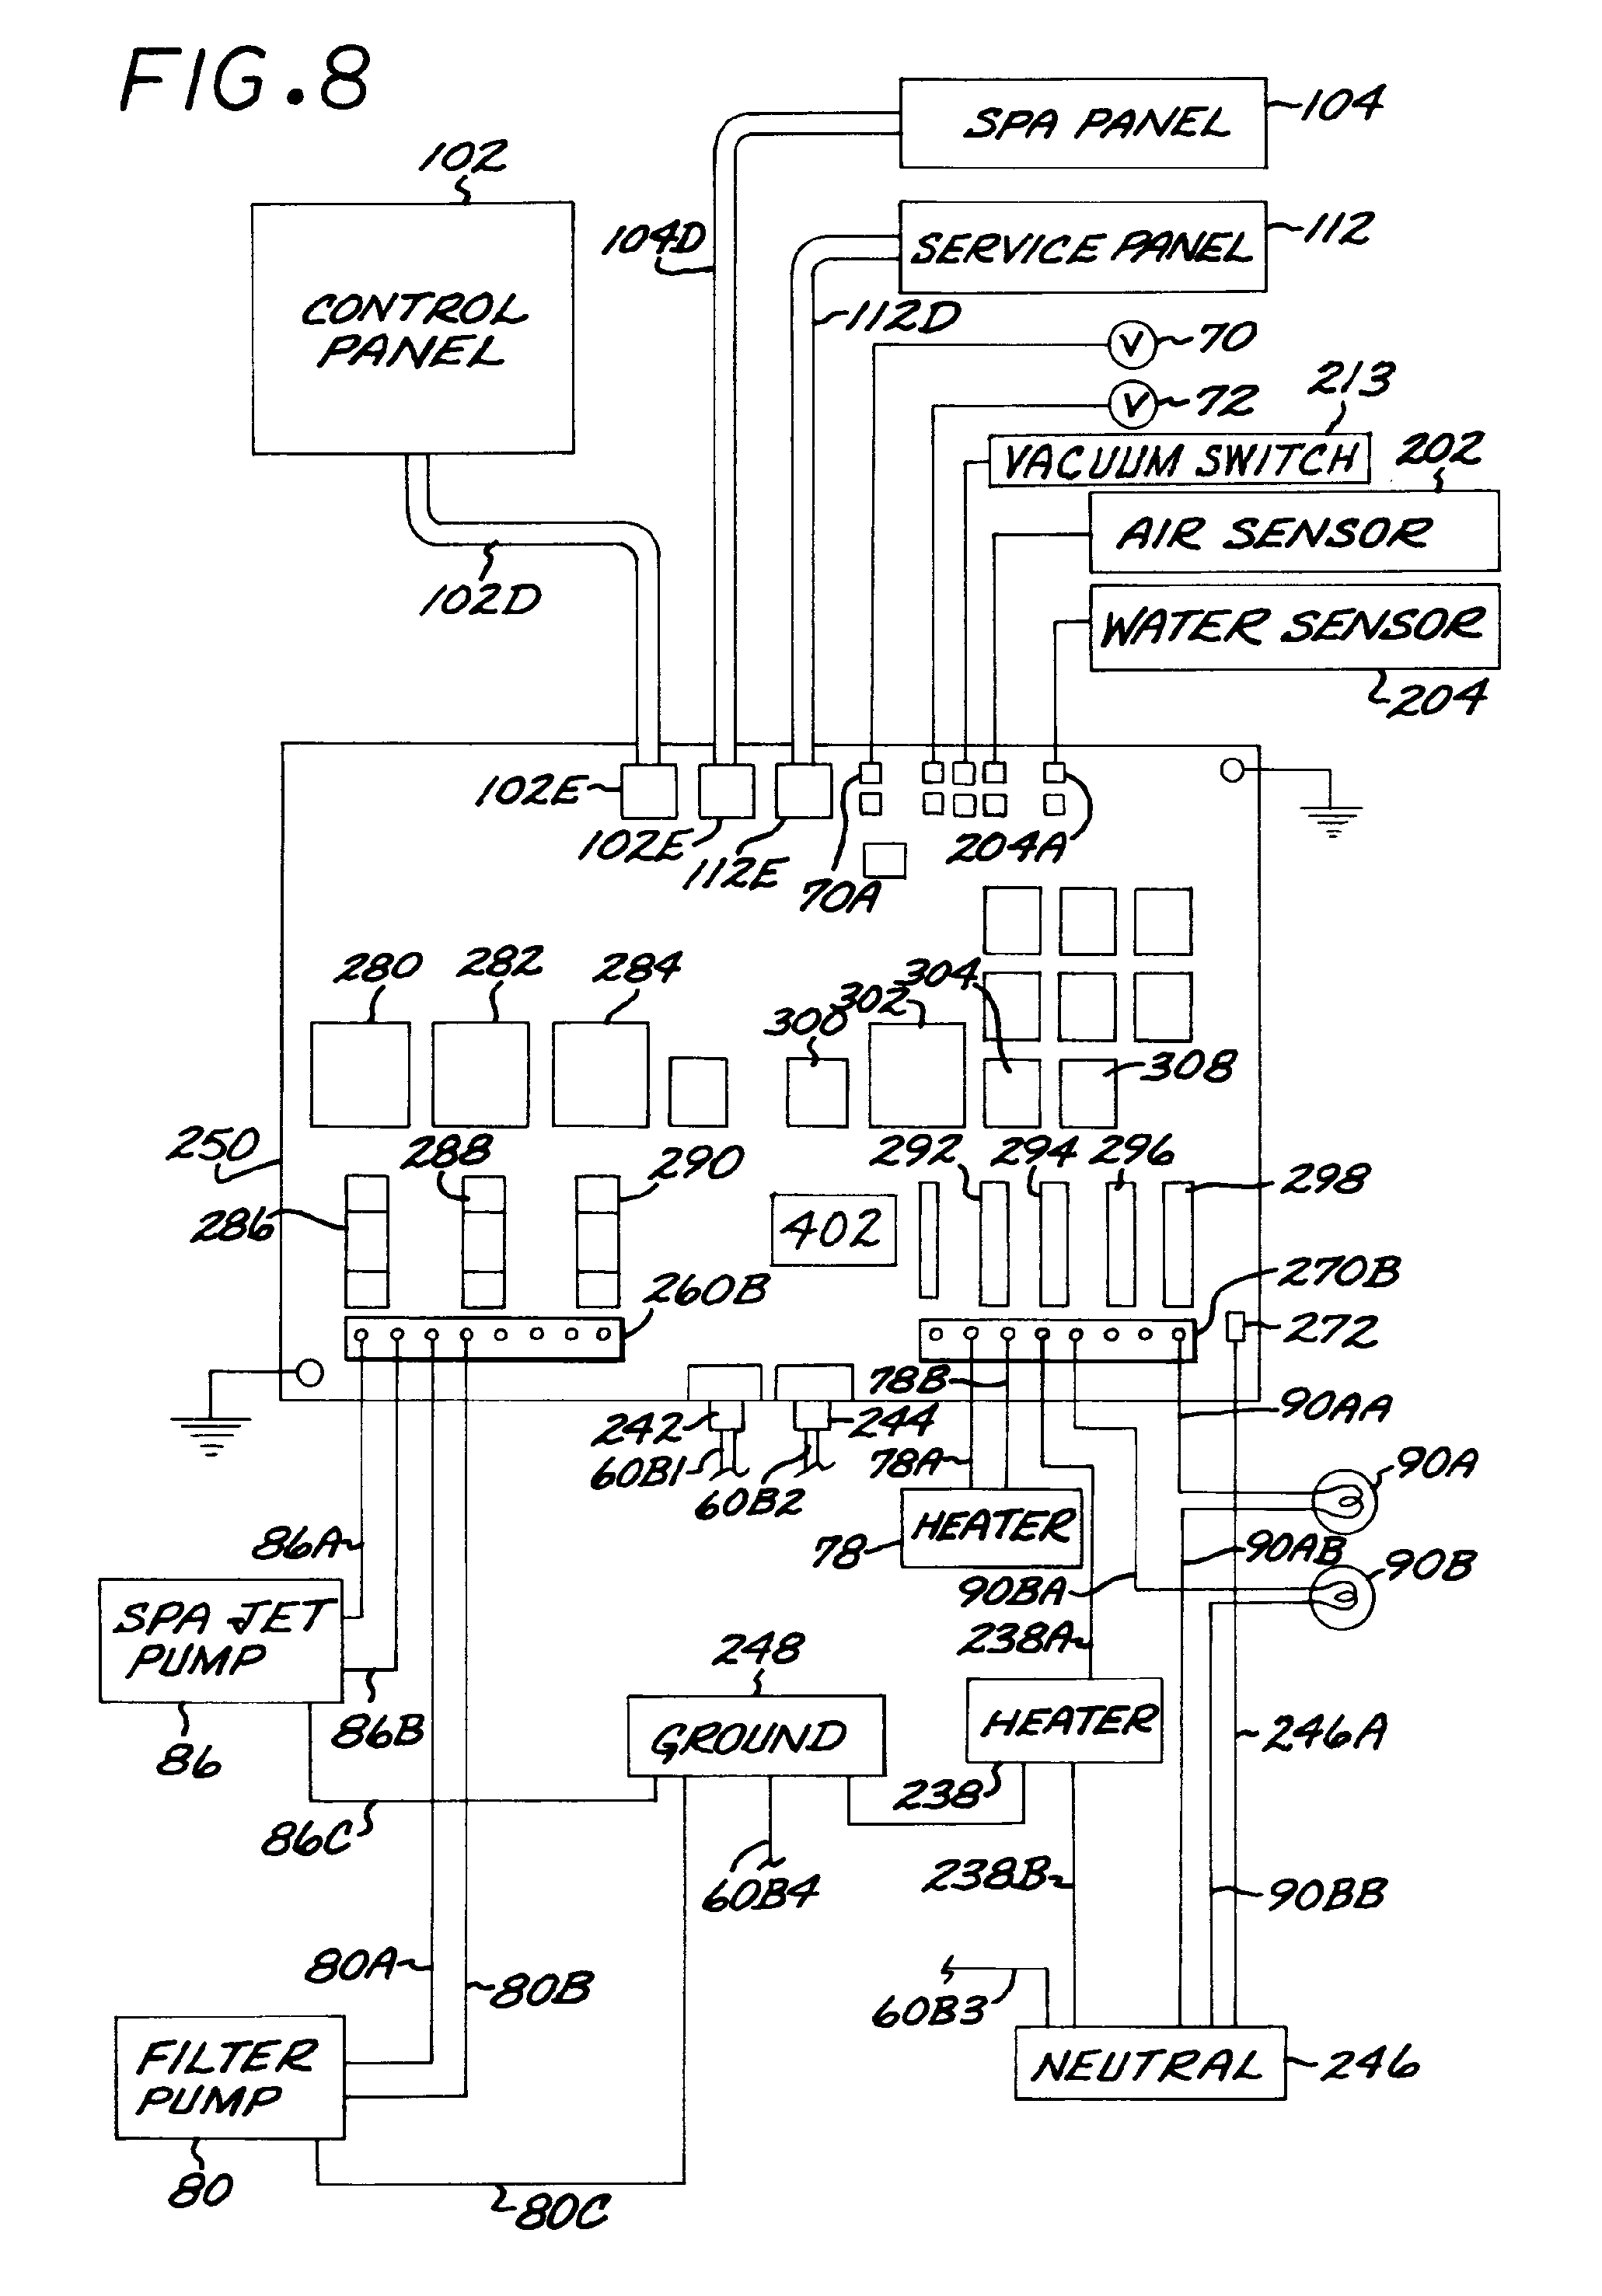 220 volt photocell wiring diagram